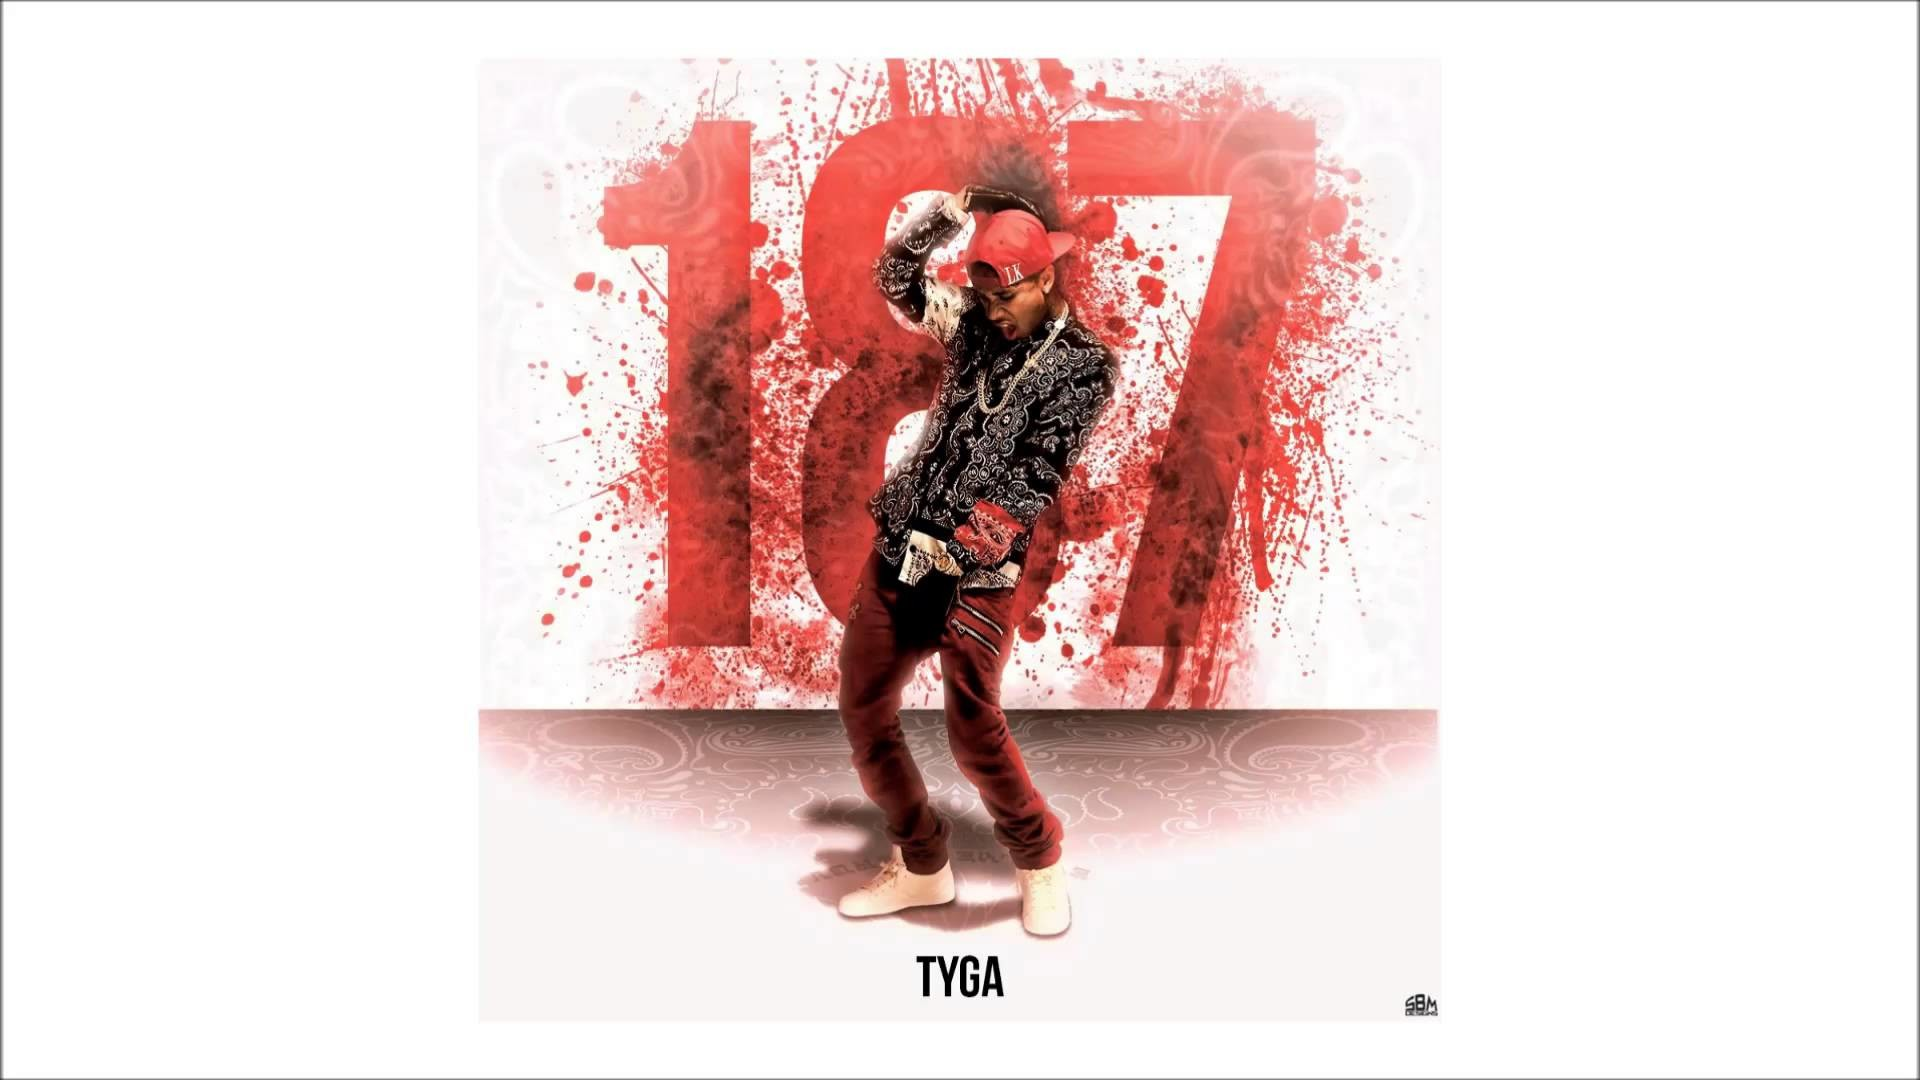 Tyga – This is realllllyyy dope.